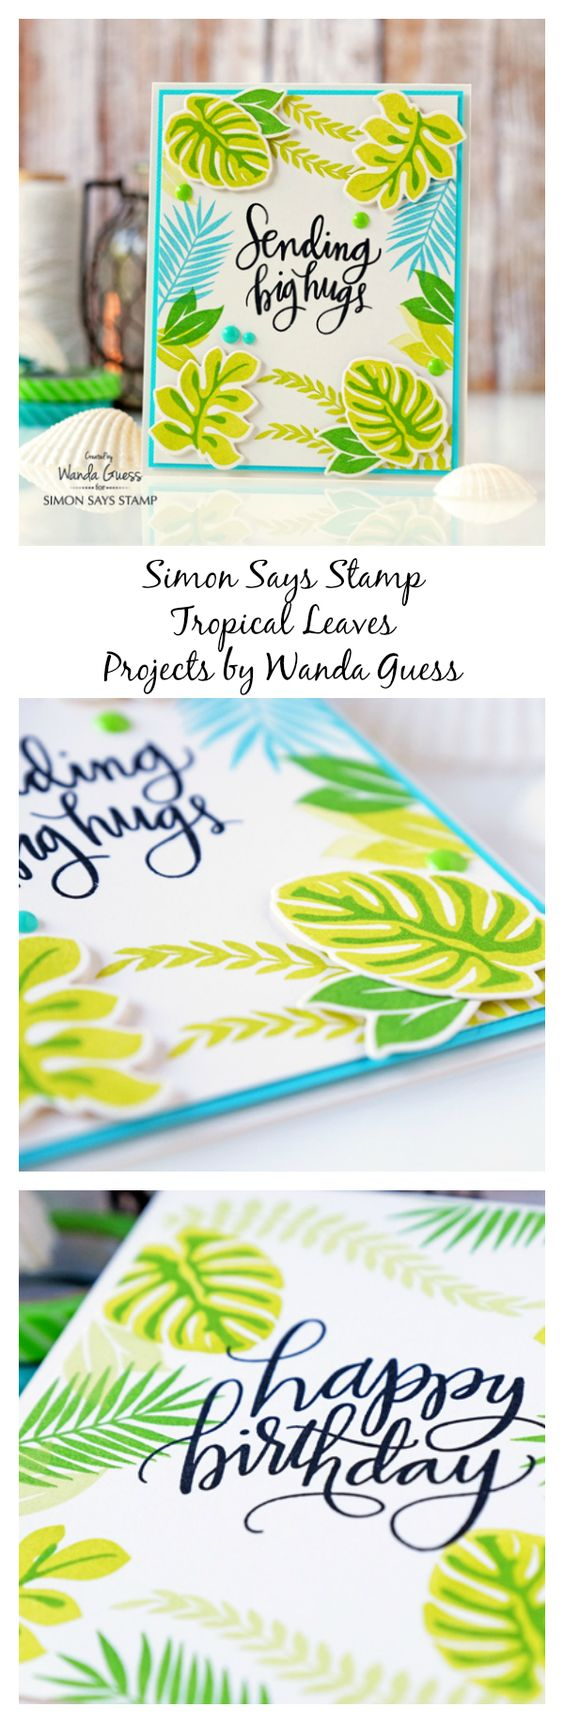 Simon Says Stamp new release. Tropical Leaves stamps and dies. Projects by Wanda Guess!